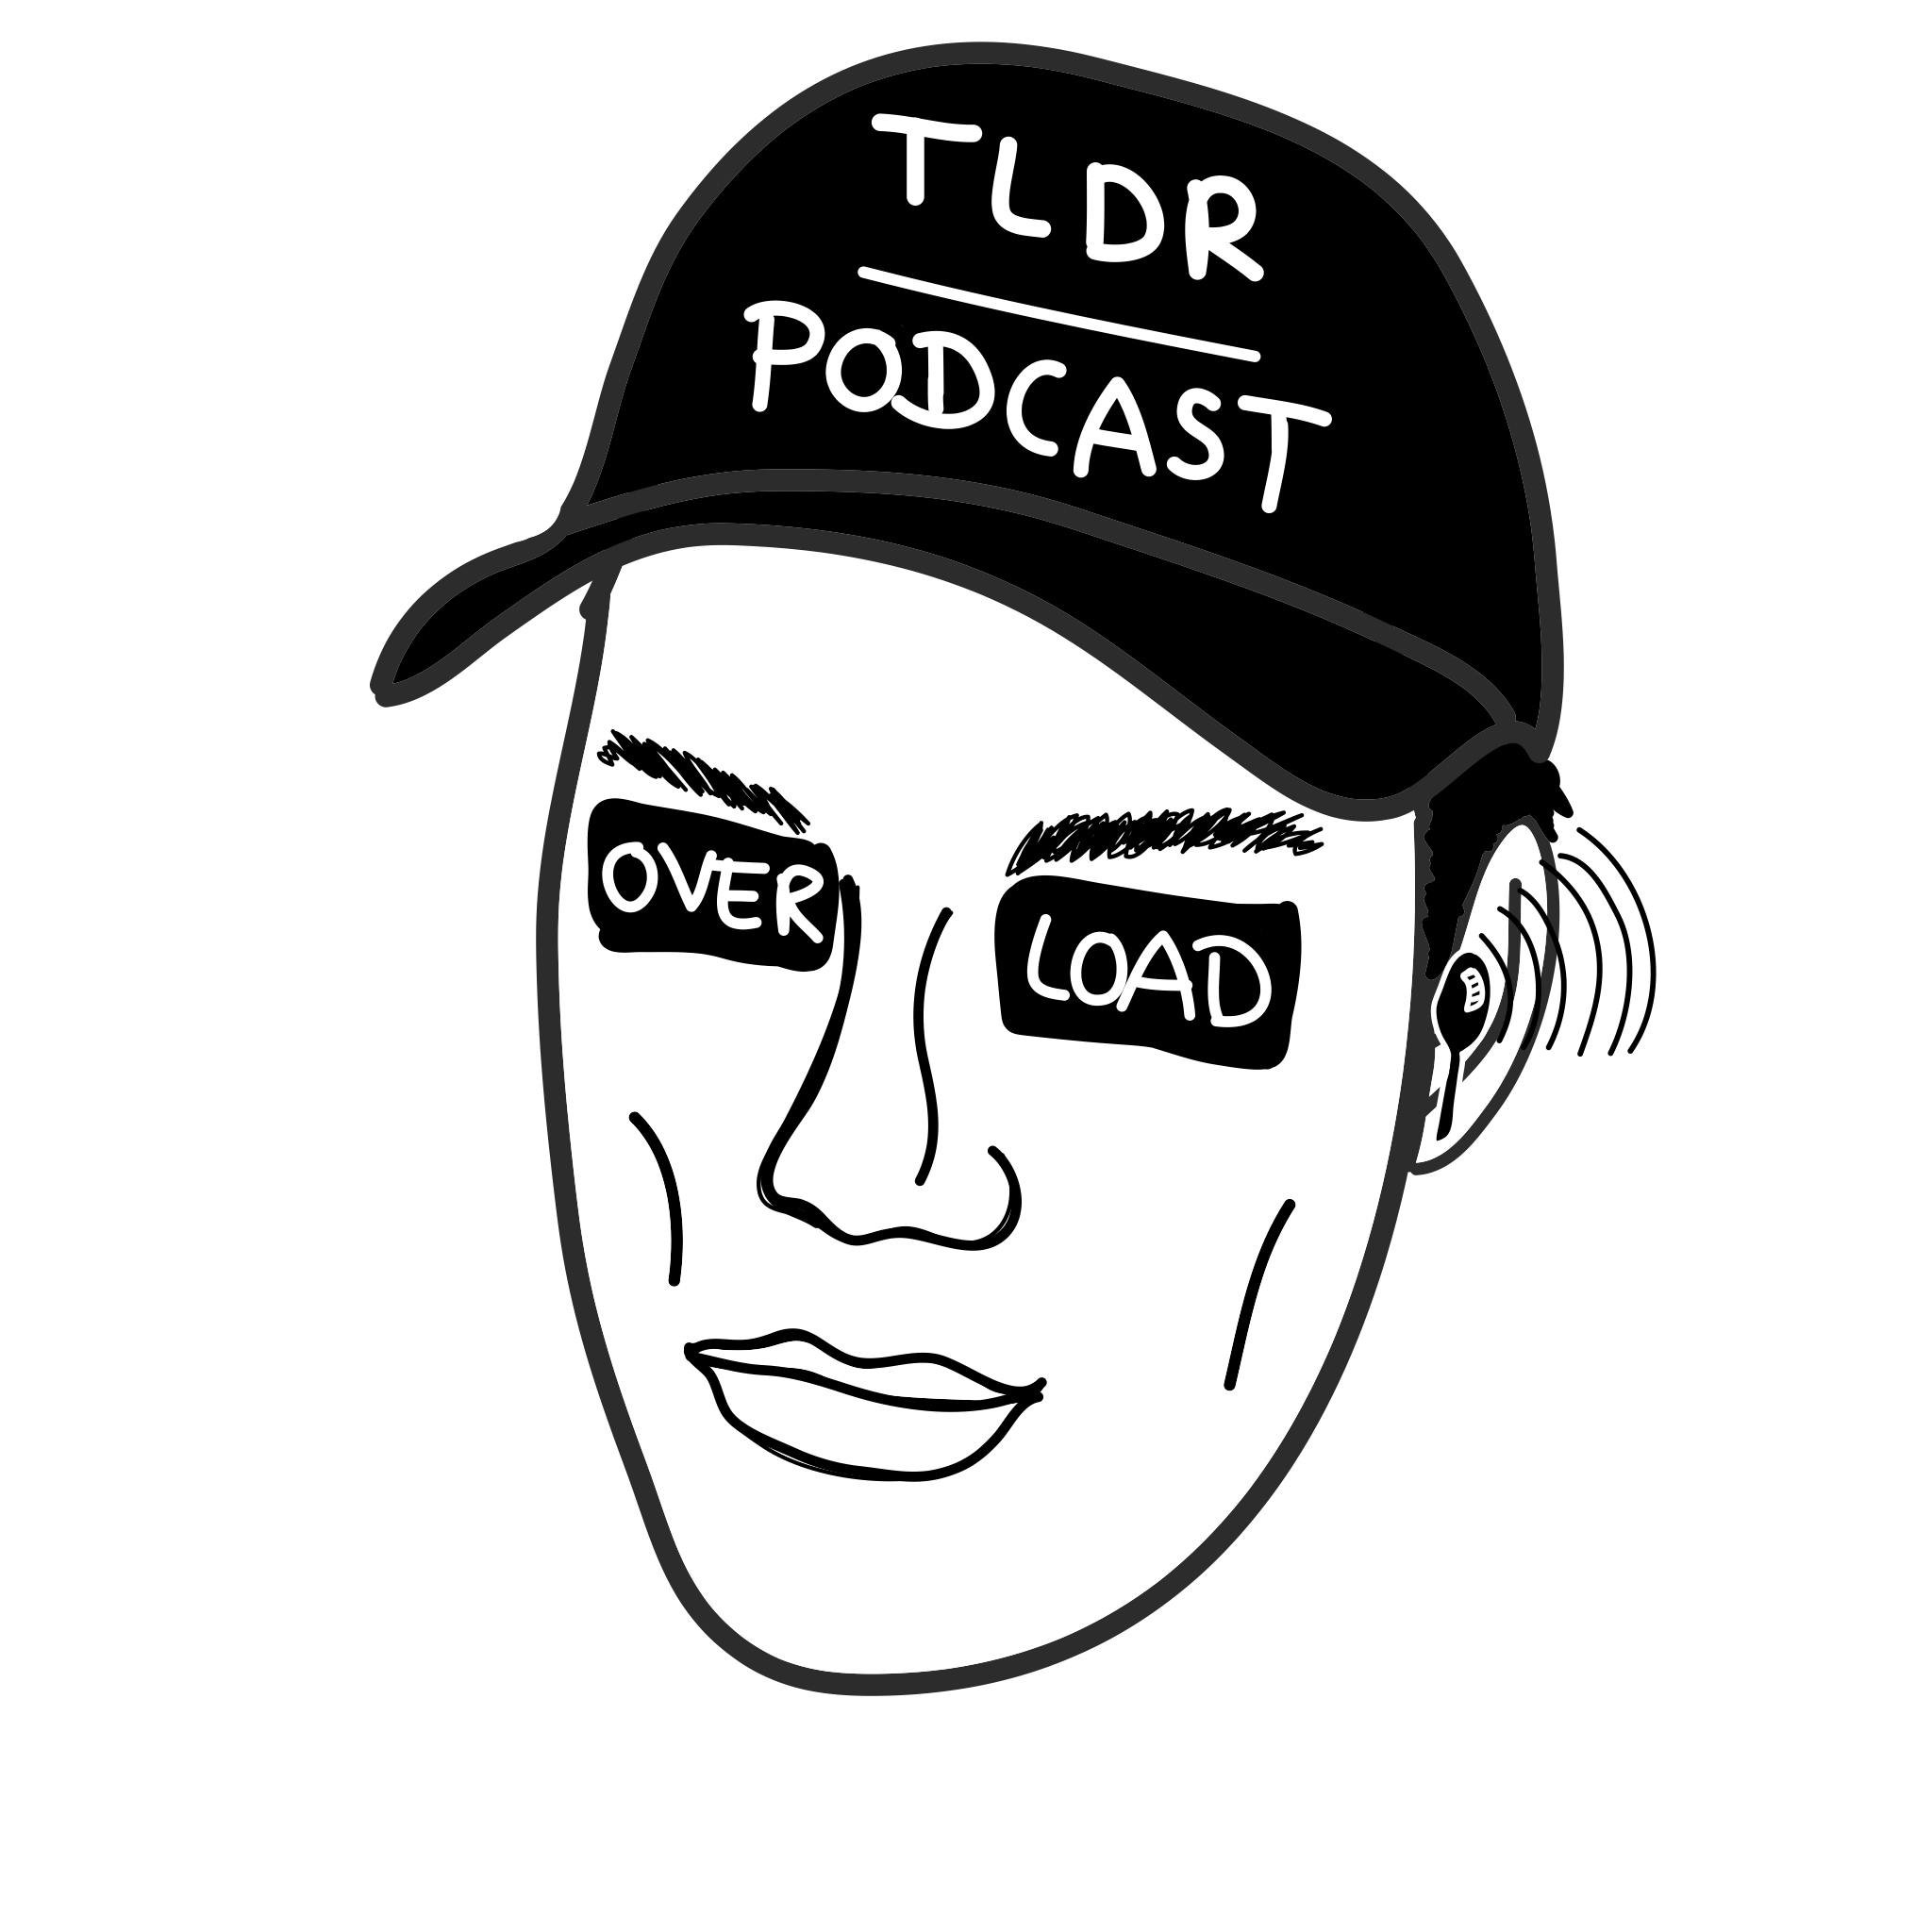 tldr-podcast